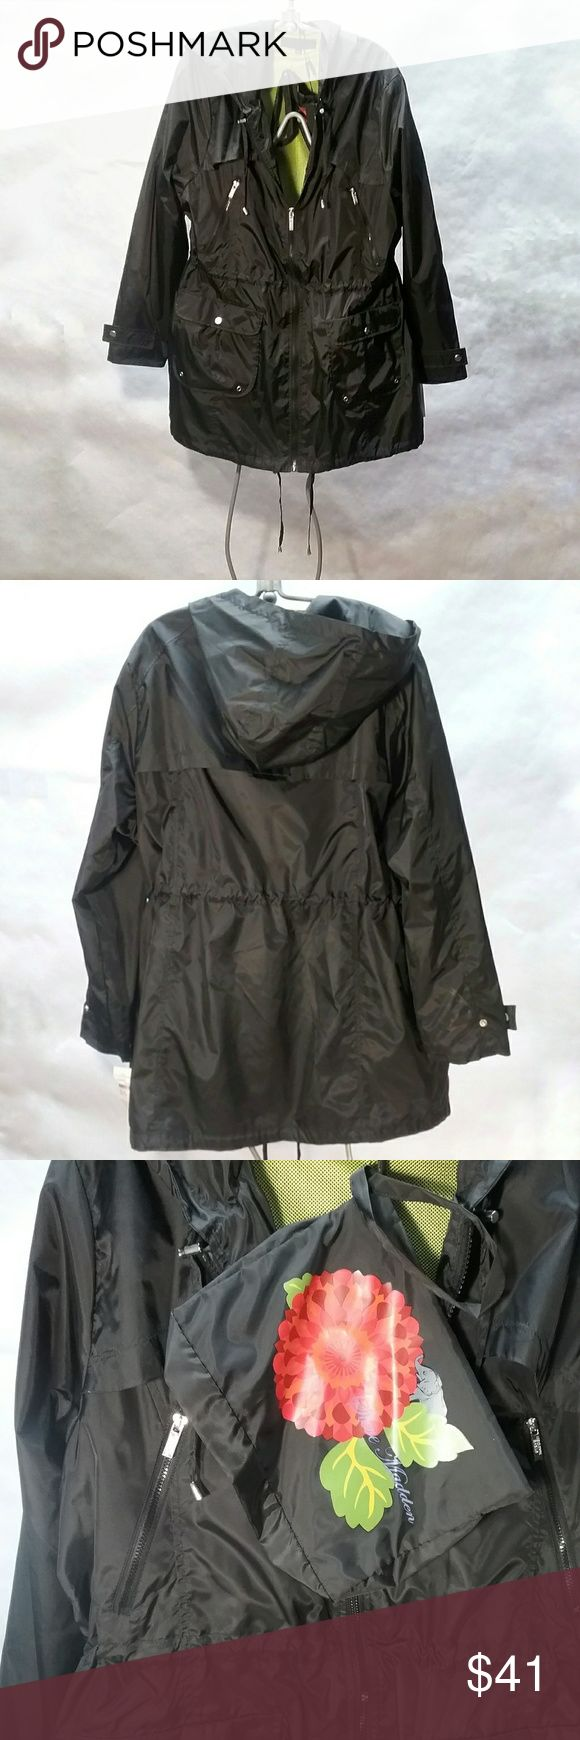 """Hooded Steve Madden Travel Anorak Black 2x Roll it up and store it in its own storage pouch. Perfect for hiking, camping, or any travels. New with tags.  Fully lined on the body with lime green mesh.  Vent flap on back. Very nicely done.   Please take your own measurements to insure fit.   Approx inches: Front zipper 29"""" Across chest 24"""" from underarm to underarm Shoulder to sleeve edge 25"""" Around bottom hem 48"""" Steve Madden Jackets & Coats"""